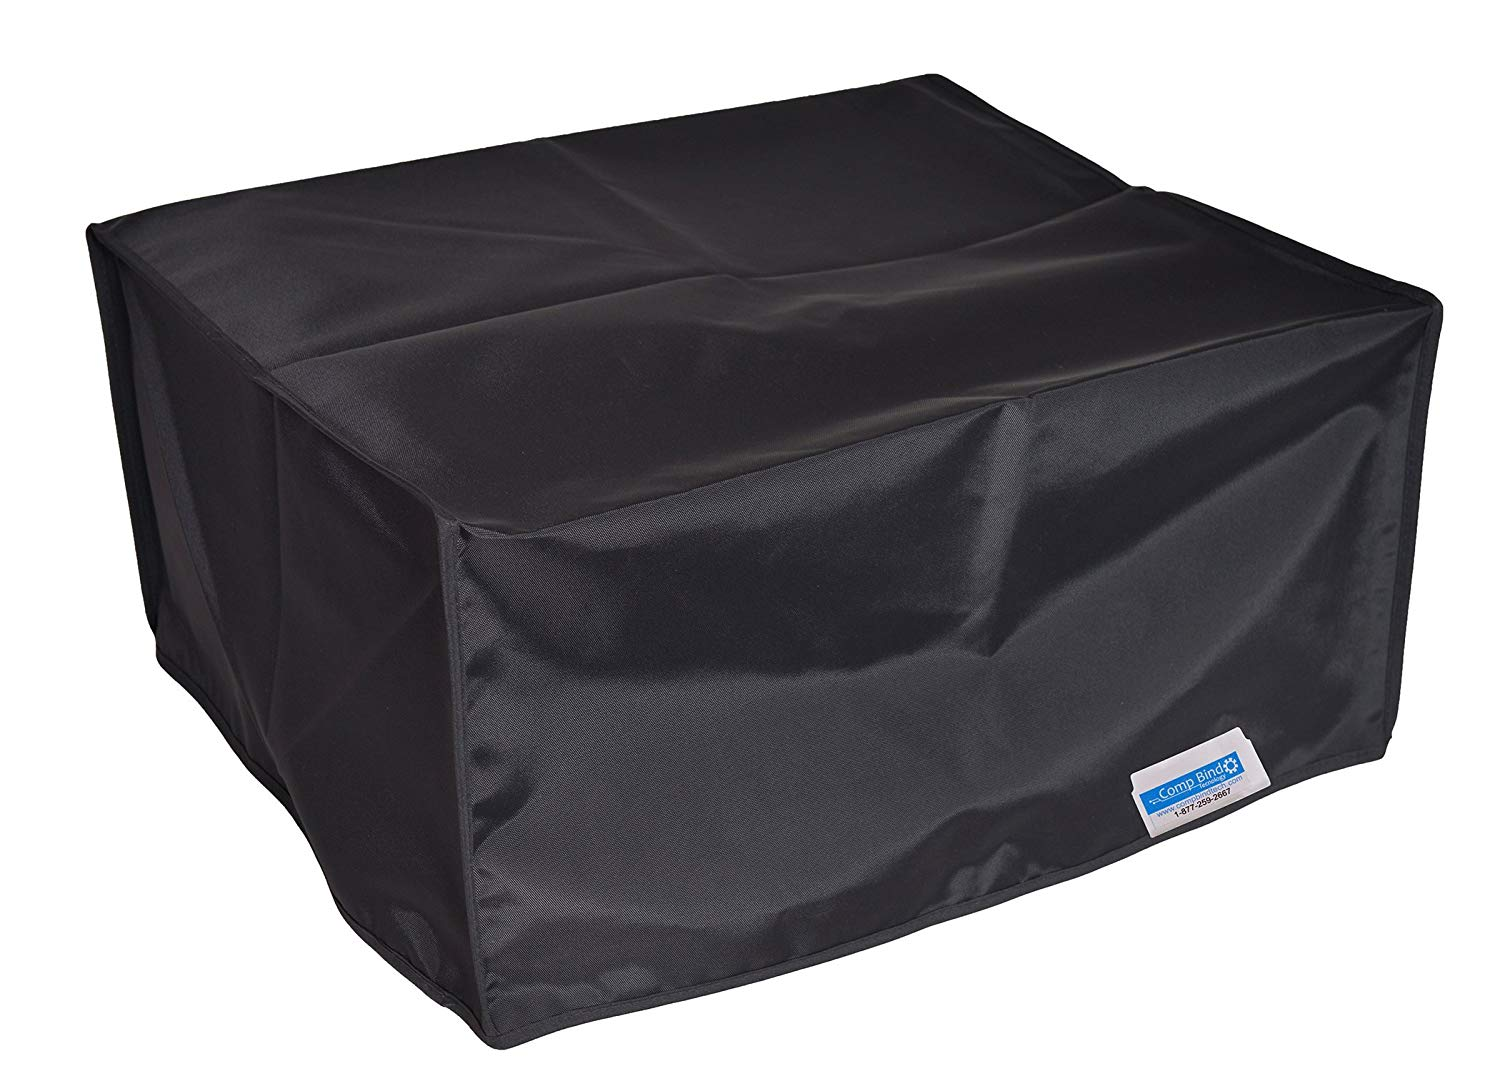 1 - Printer Dust Cover for HP OfficeJet